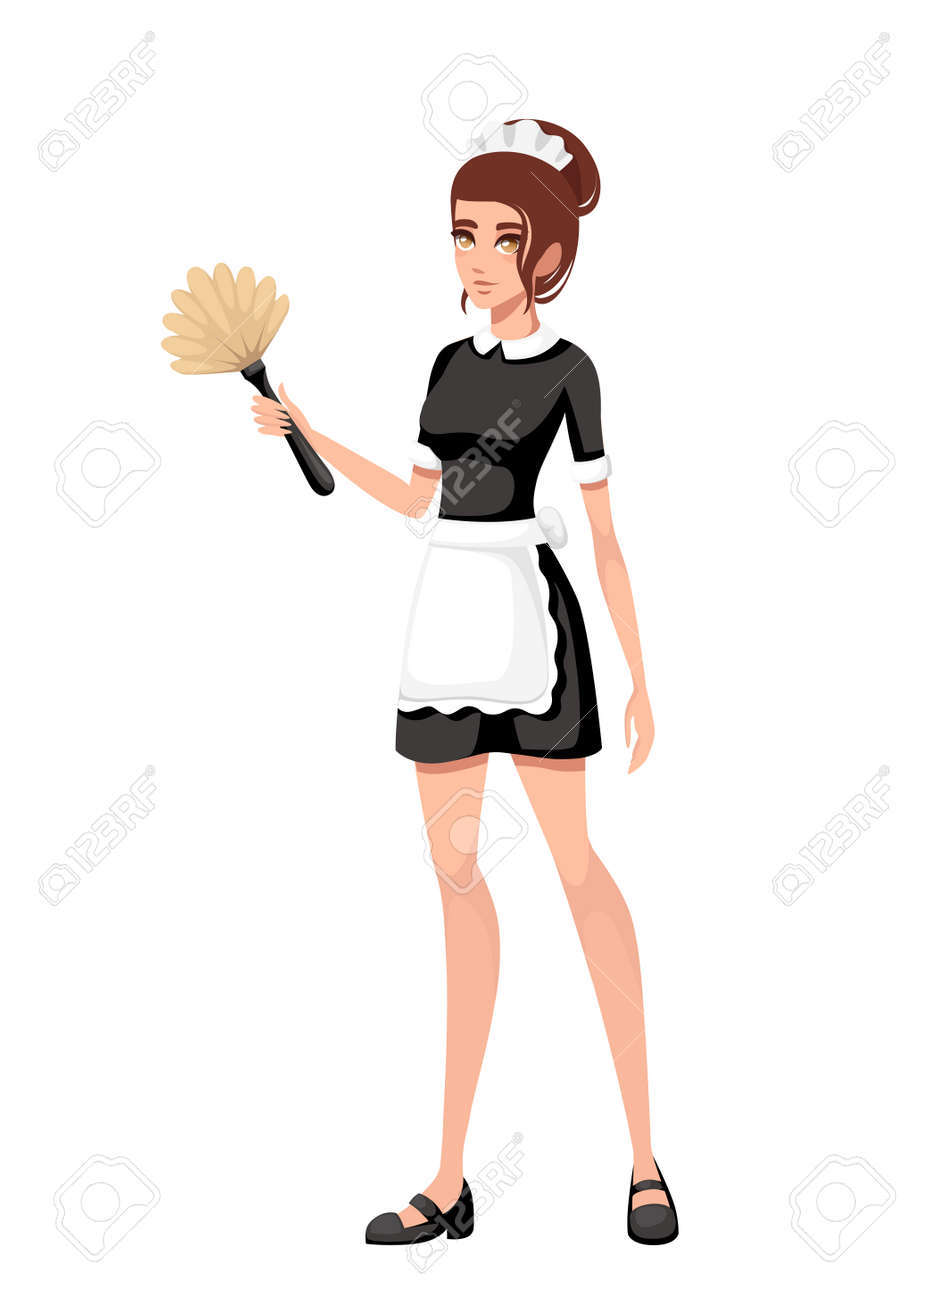 Beautiful smiling maid in classic french outfit. Cartoon character design. Women with brown short hair. Maid holding duster brush. Flat vector illustration isolated on white background. - 112411520